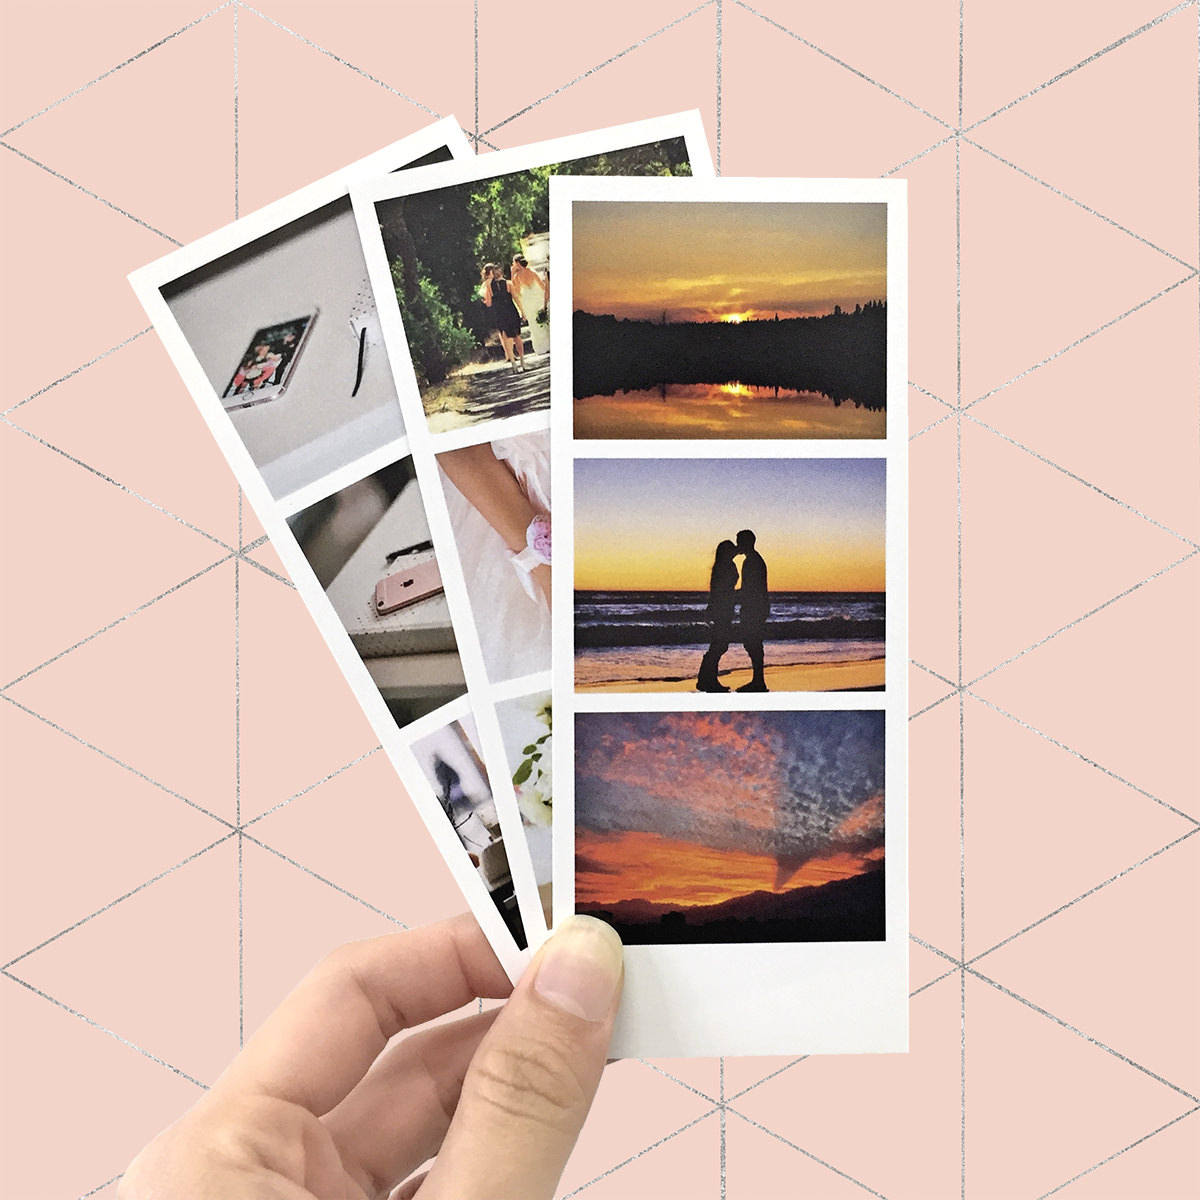 Preview of Photostrips (4 in 1)